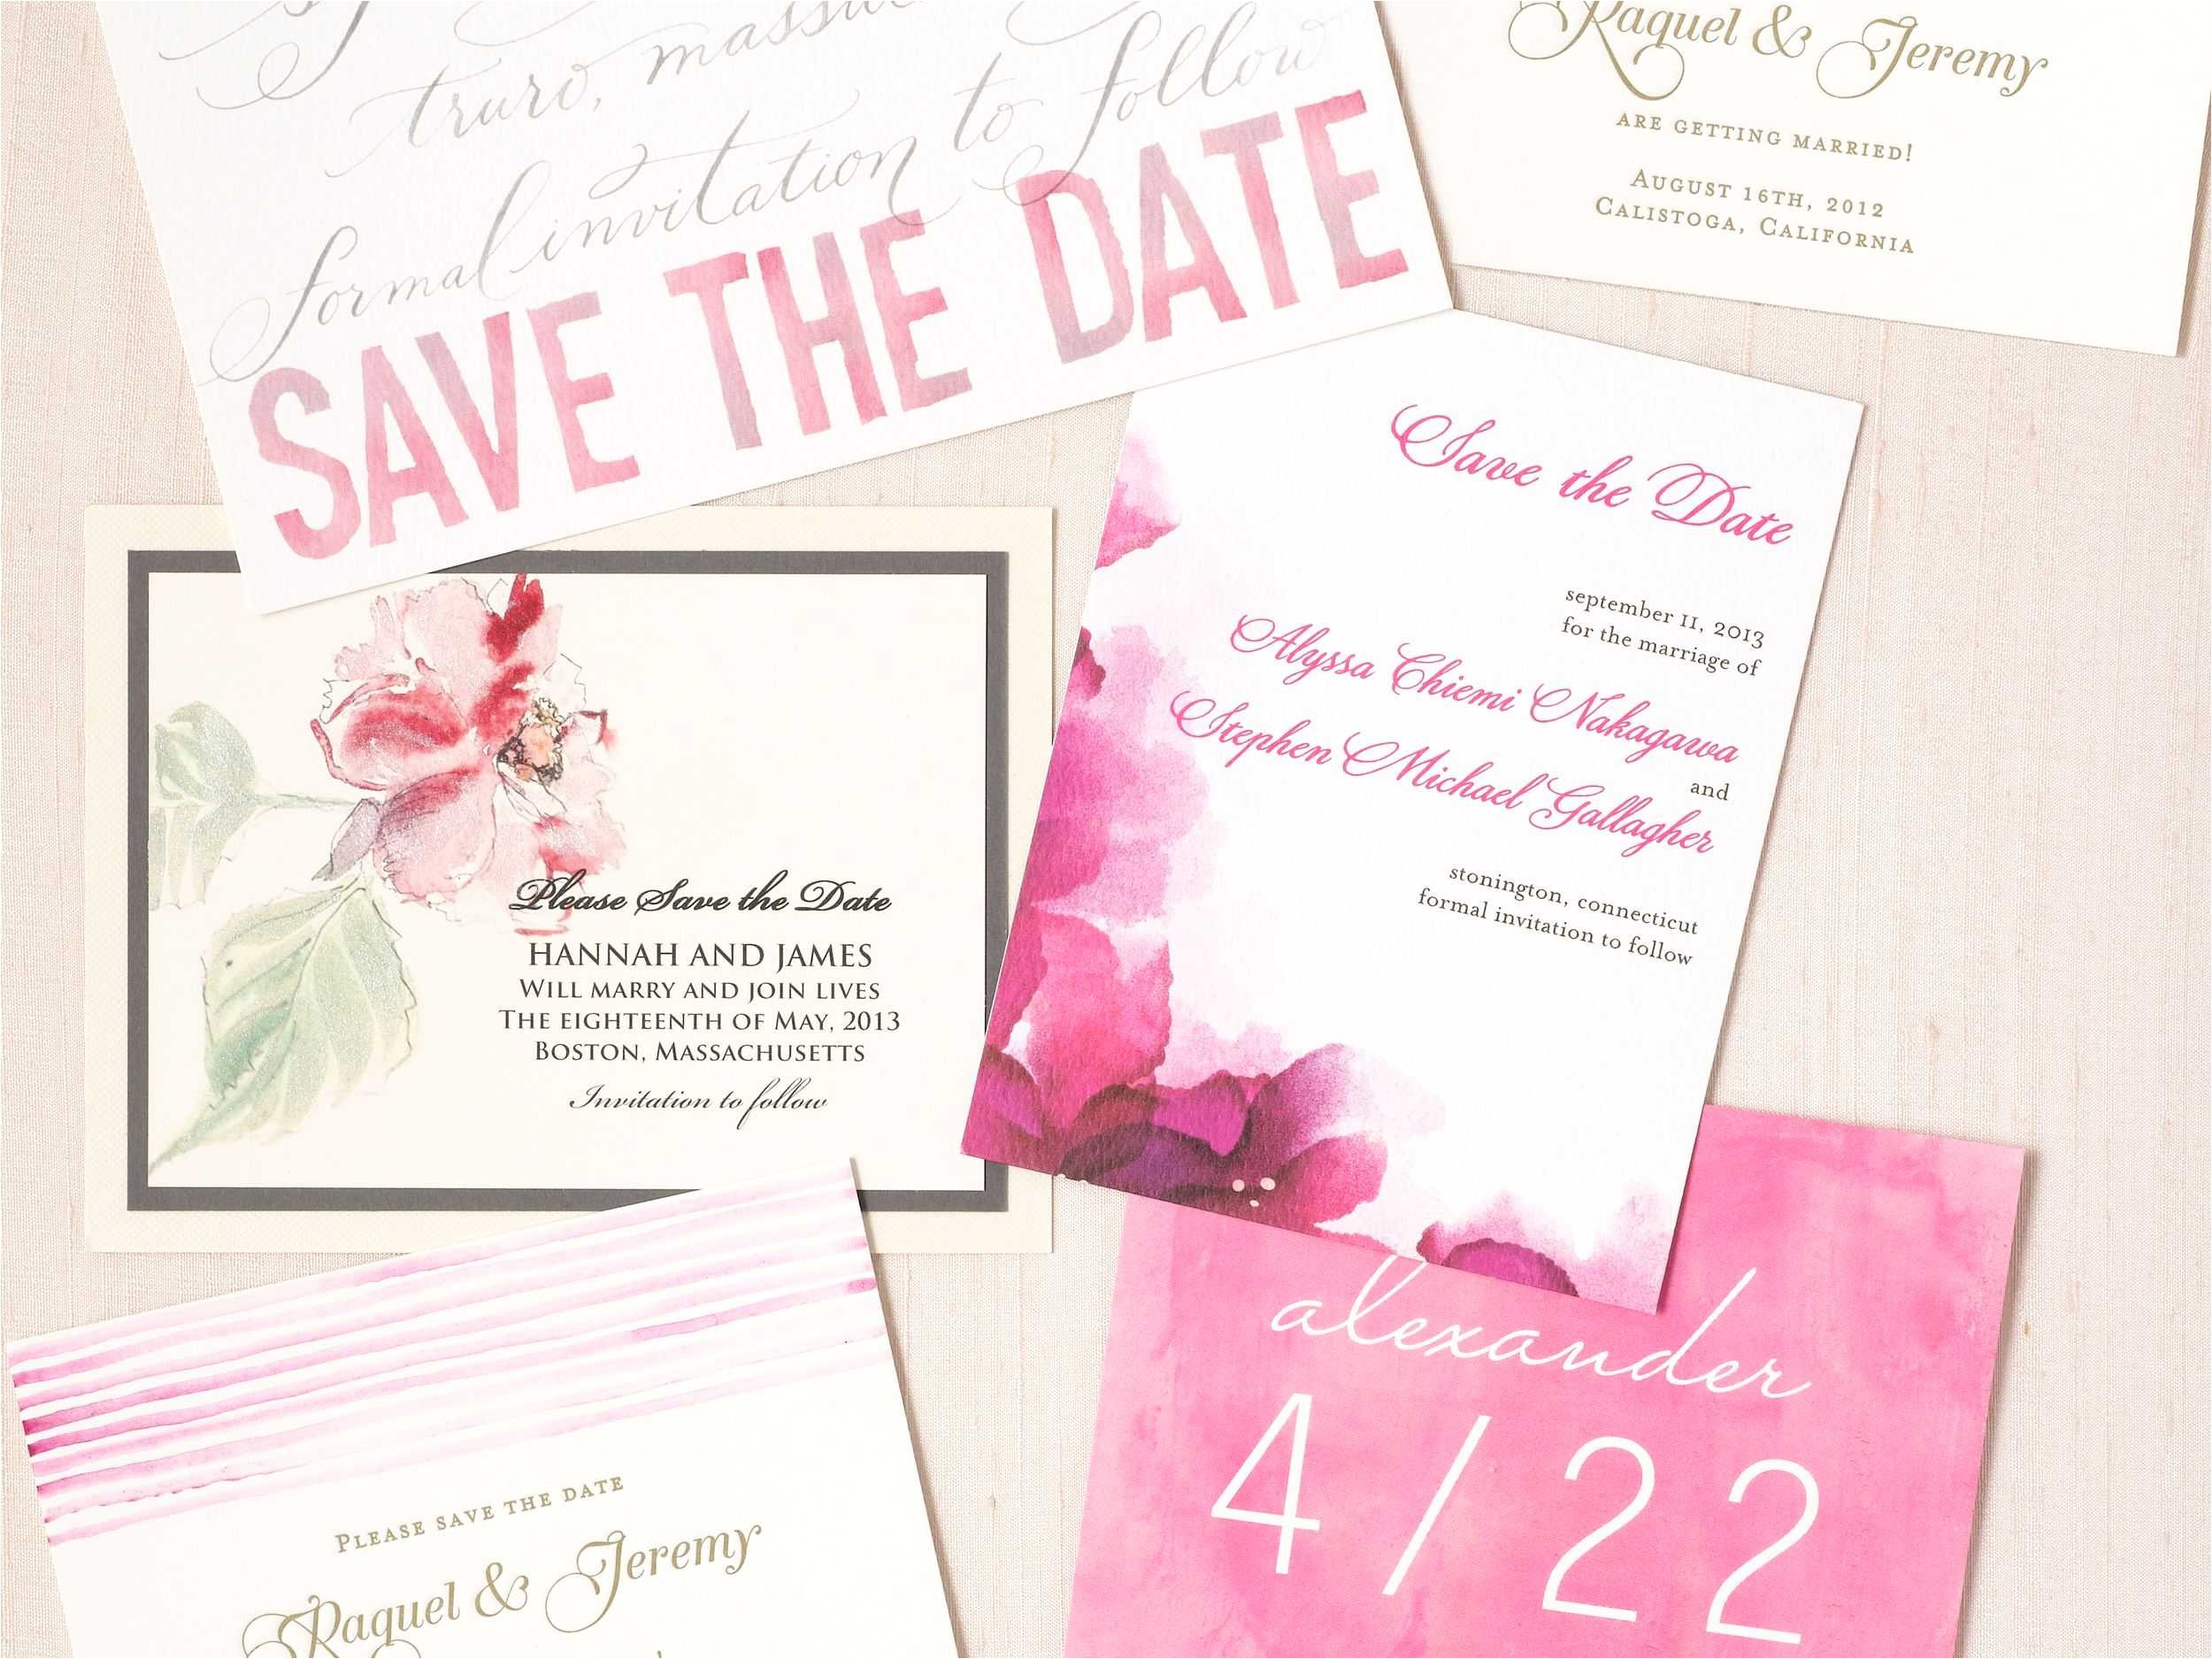 Multi Color Wedding Invitations Multi Color Wedding Invitations New top Wedding Invitation